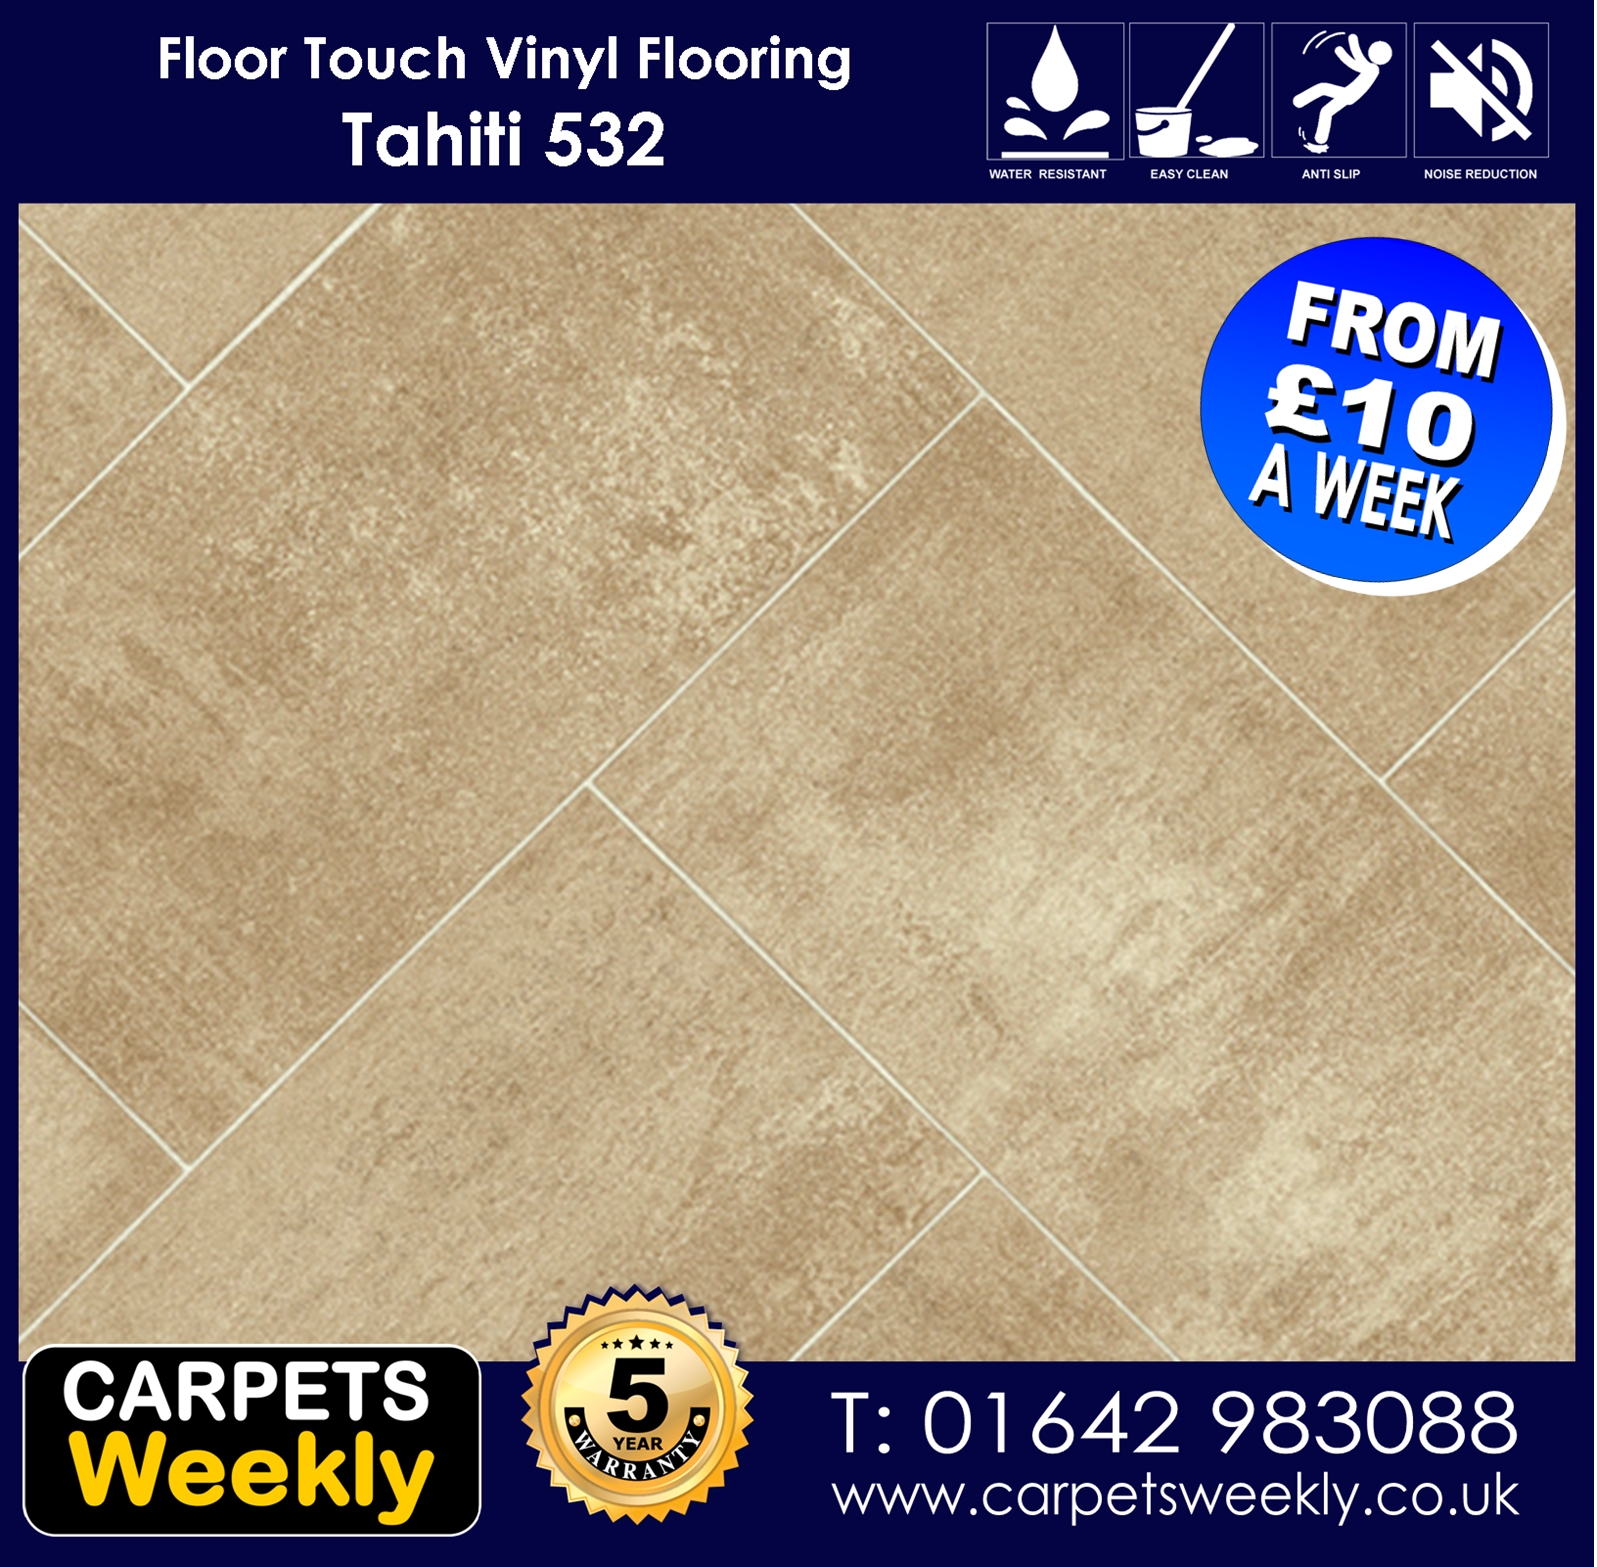 Tahiti 532 Vinyl Flooring by Floor Touch from Carpets Weekly